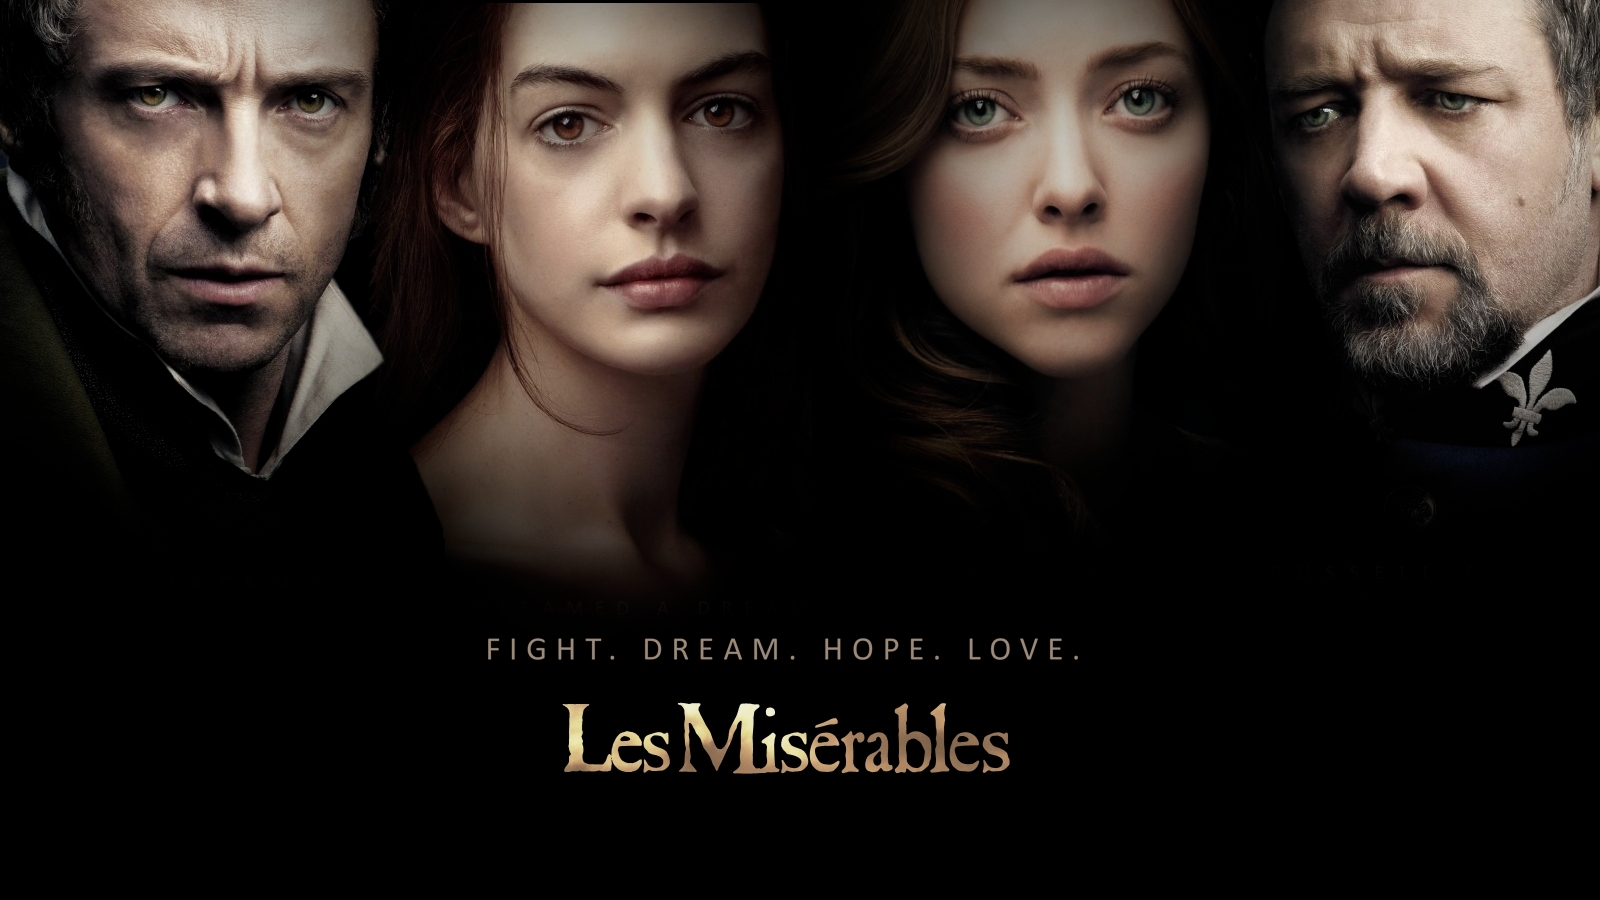 les miserables movie review Les misérables is a 2012 musical drama film directed by tom hooper and scripted by william nicholson, alain boublil, claude-michel schönberg, and herbert kretzmer, based on the musical of the same name by boublil and schönberg which is in turn based on the 1862 french novel by victor hugo the film is a british.